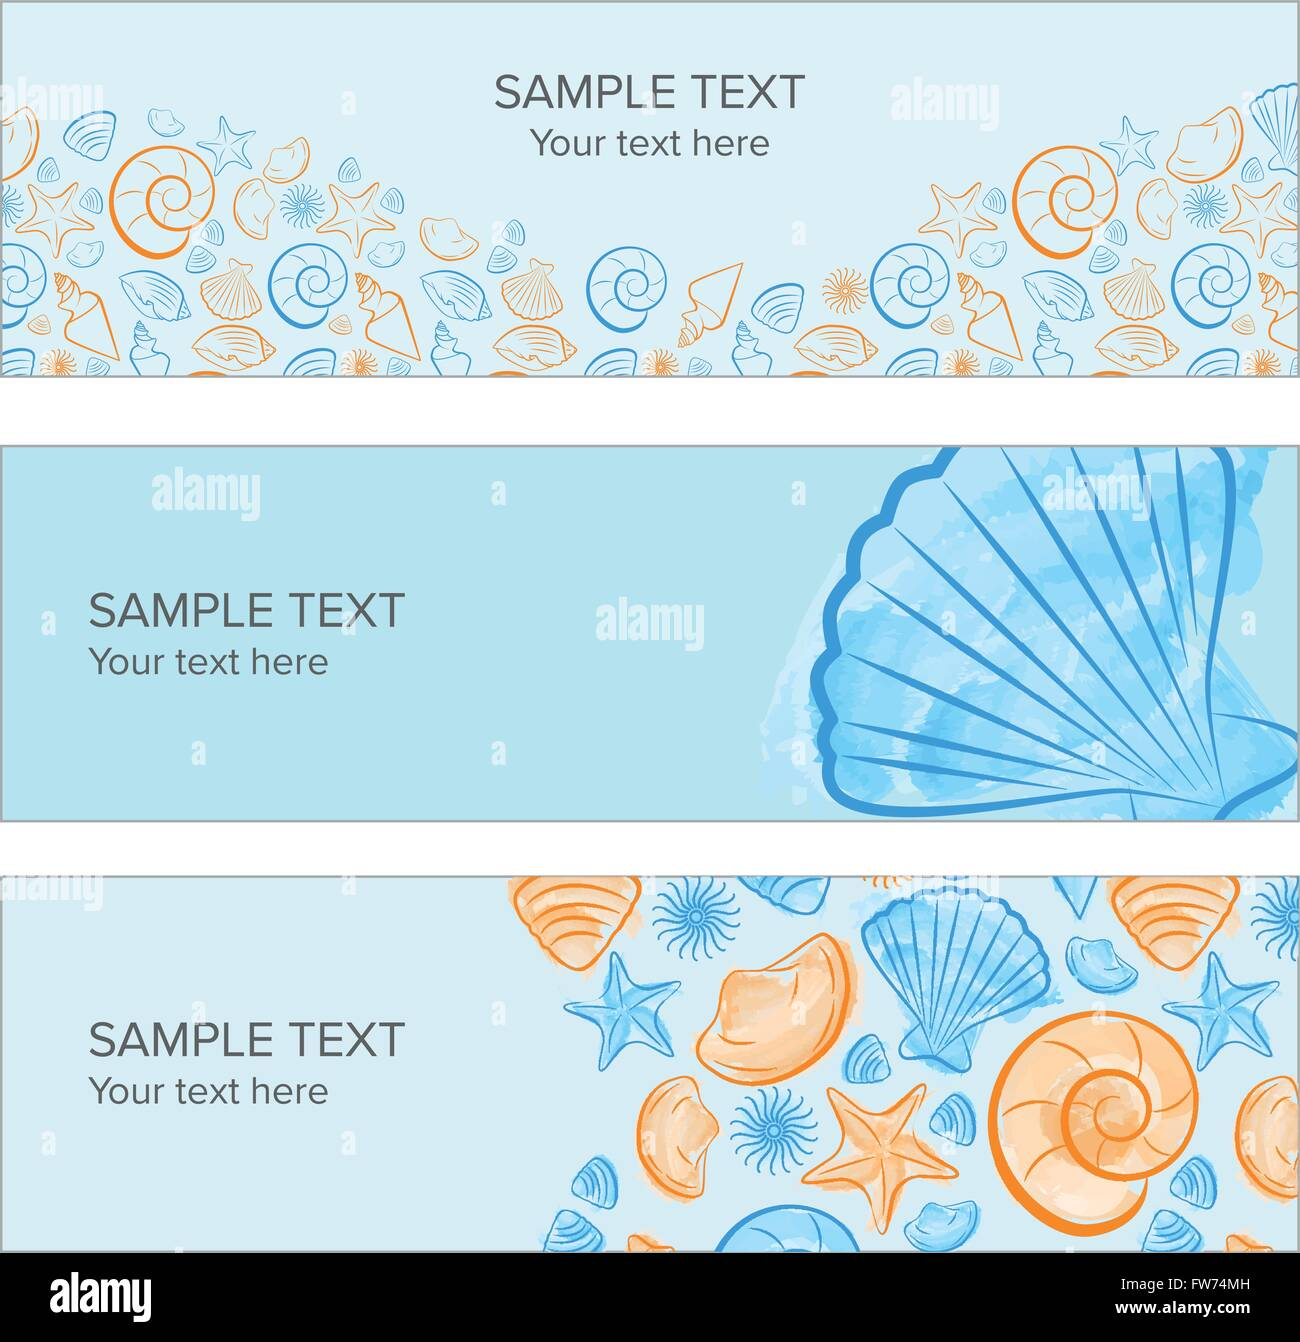 Seashell Summer Banner With Draw, Icon Created With Illustrator Watercolor  Brush   Stock Image